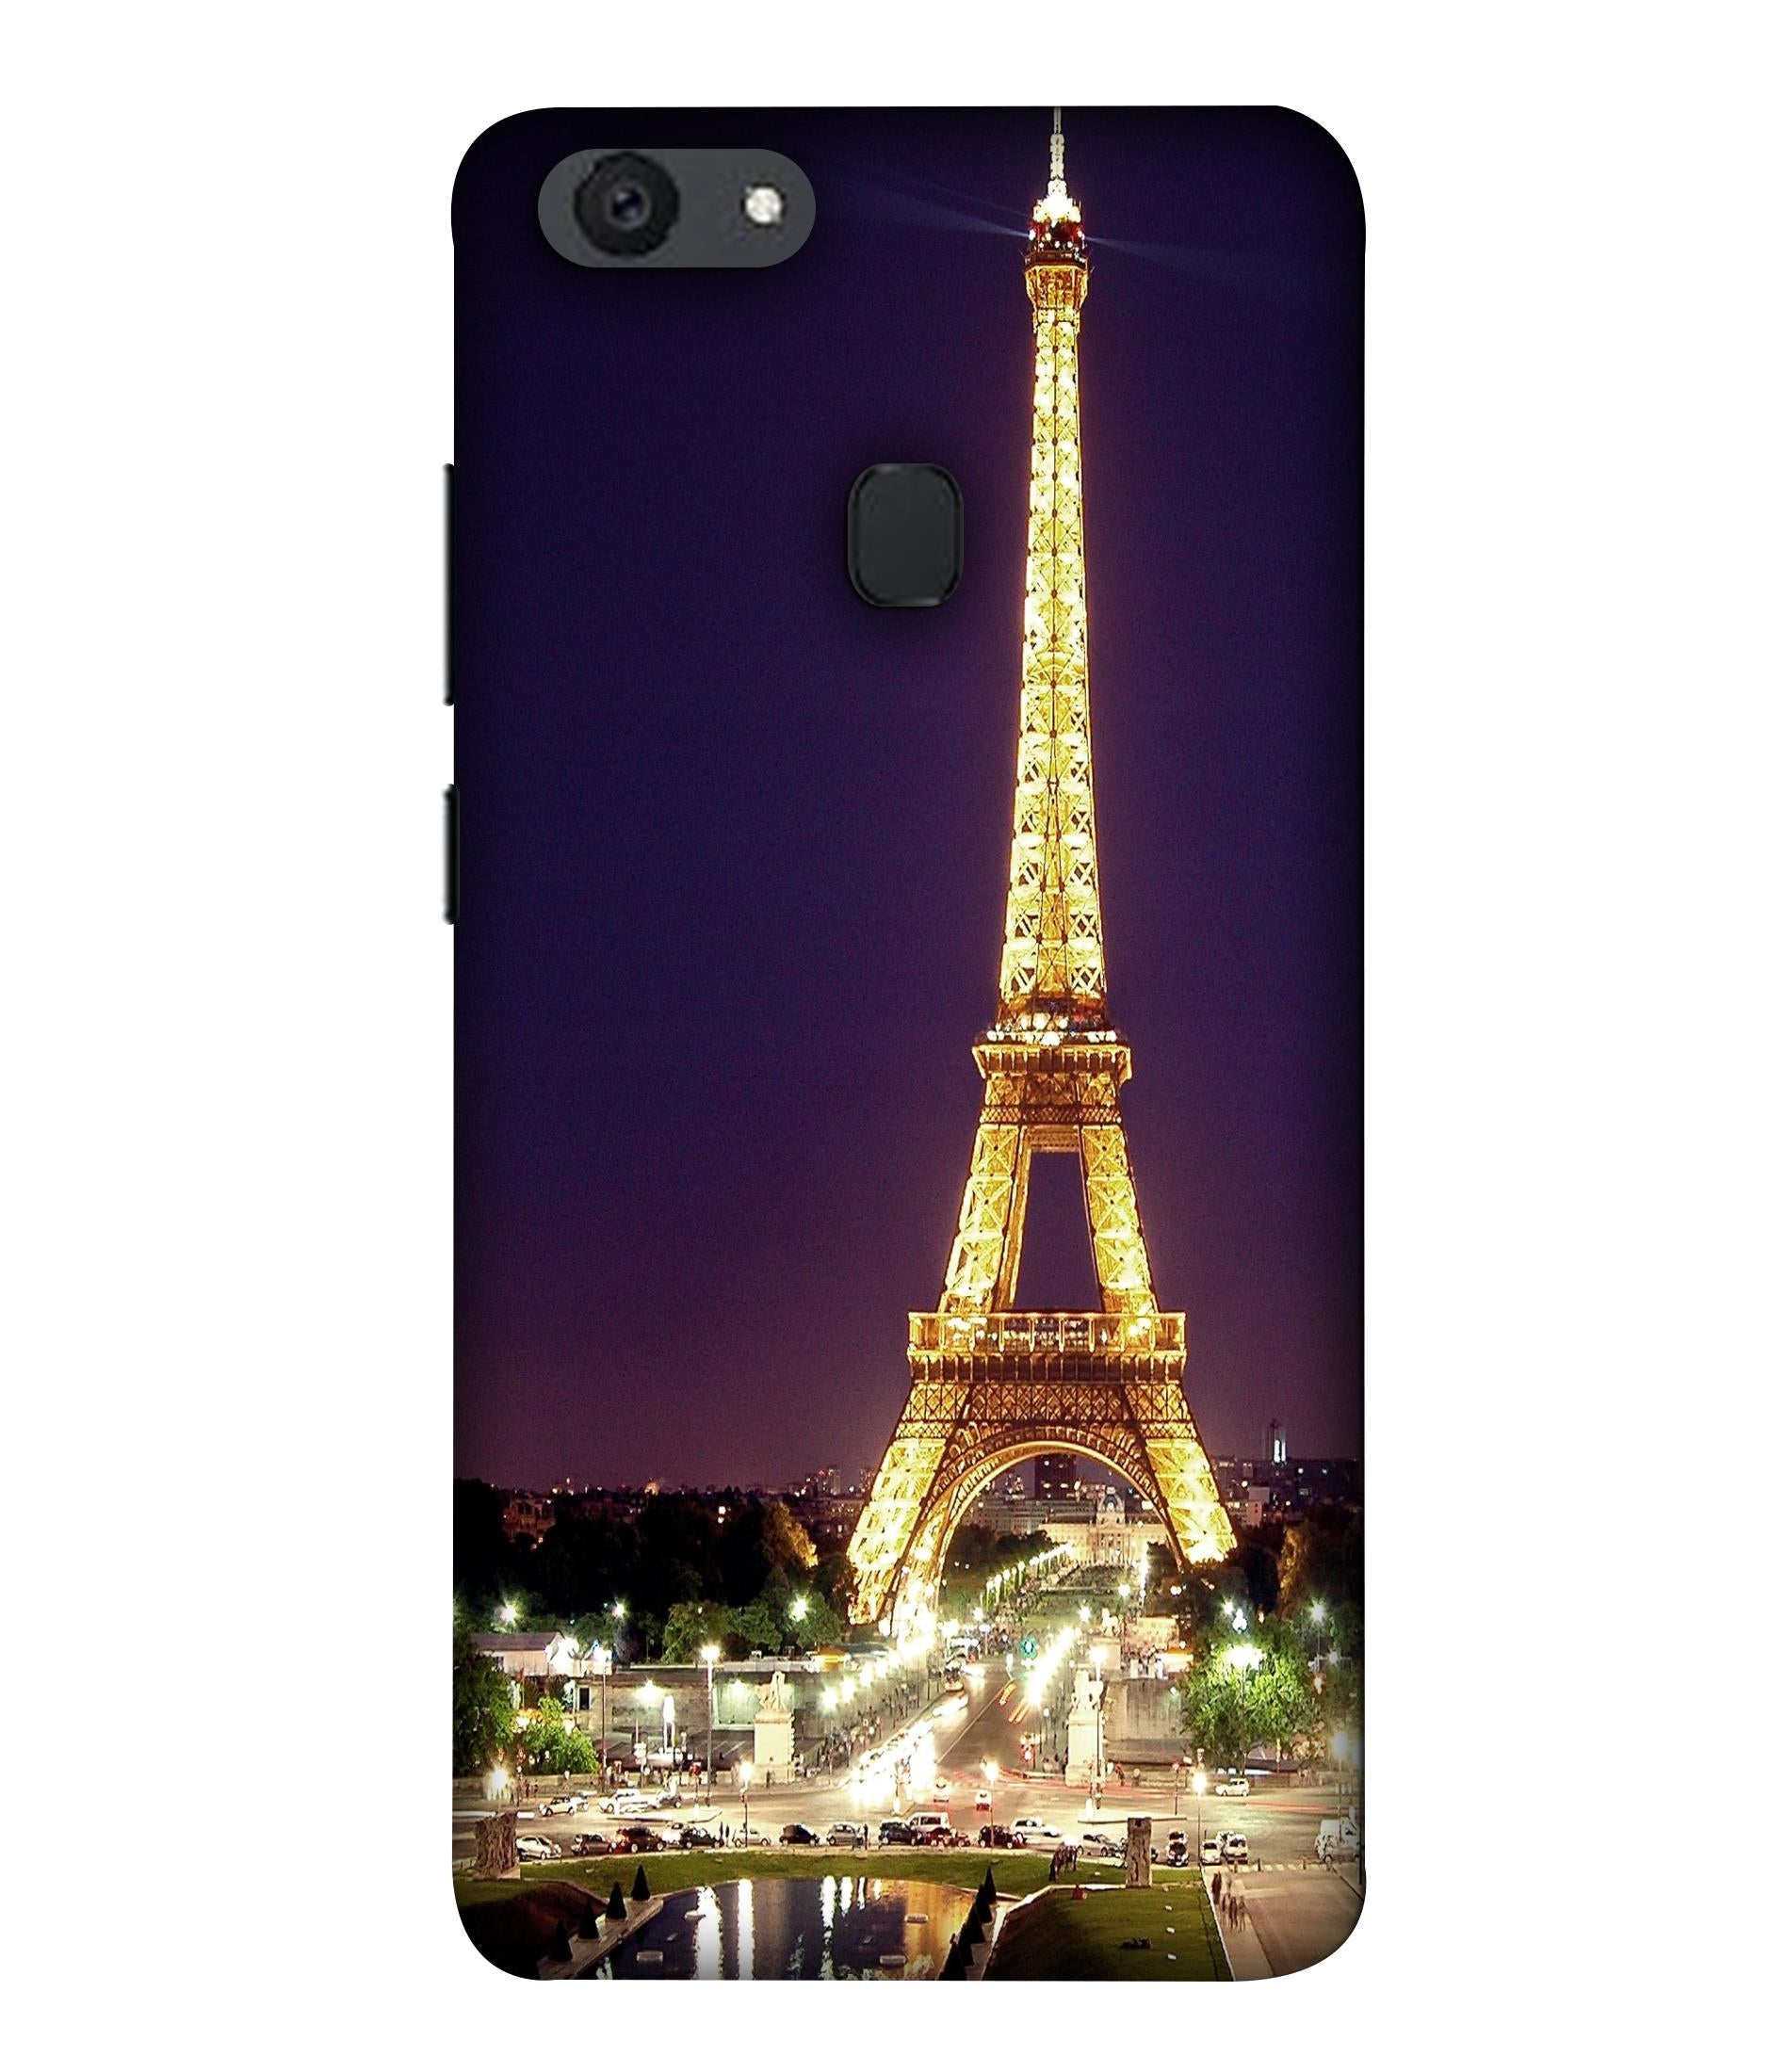 OPPOF5 Affill Tower Cityligh Designed Back Cover